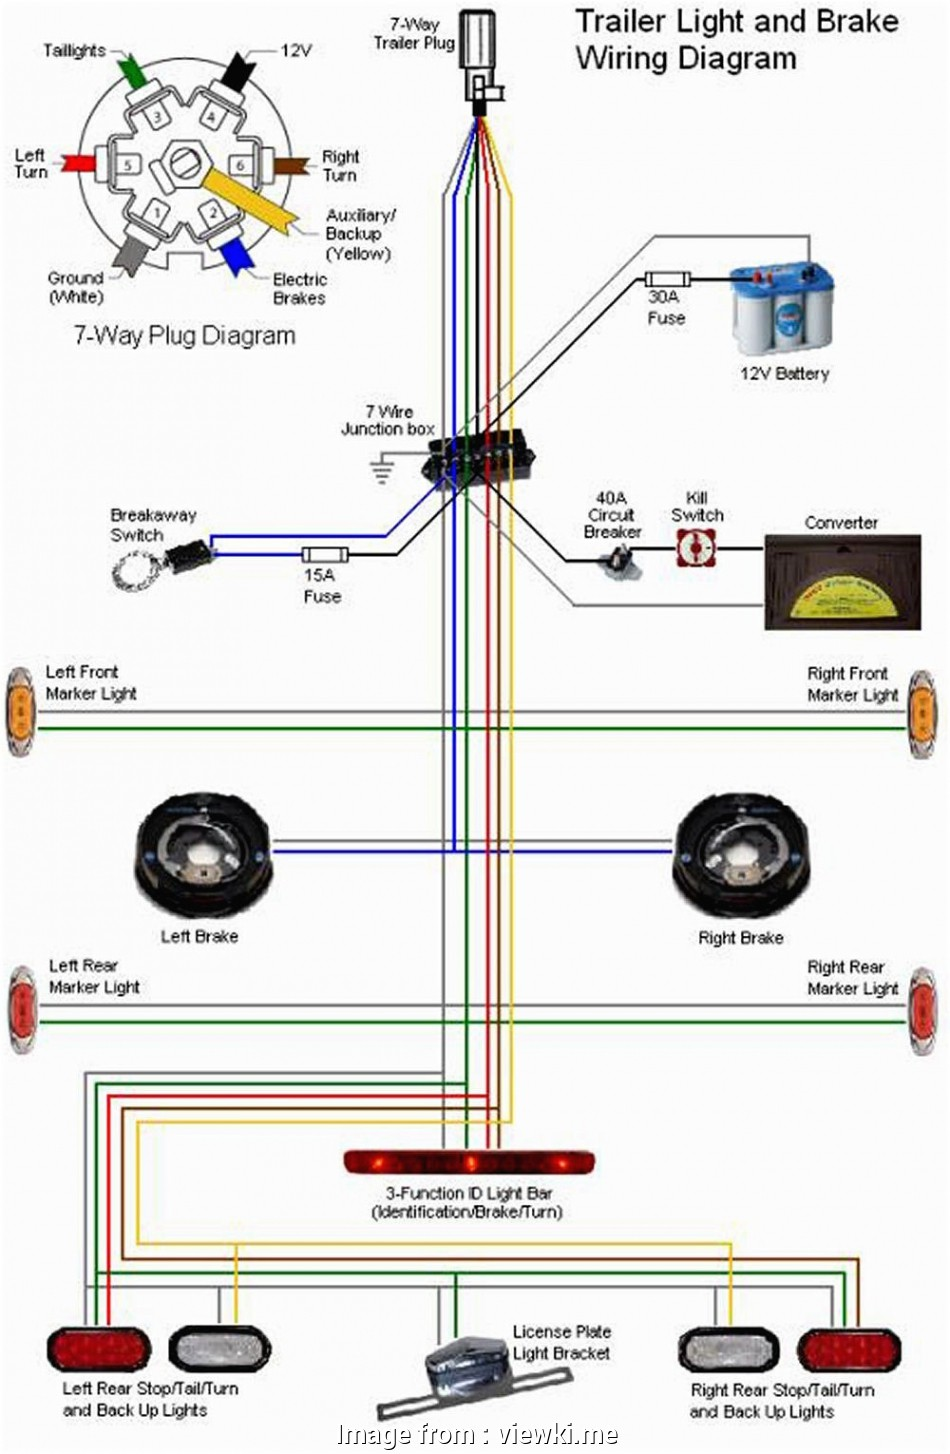 Hopkins Breakaway Wiring Diagram from tonetastic.info